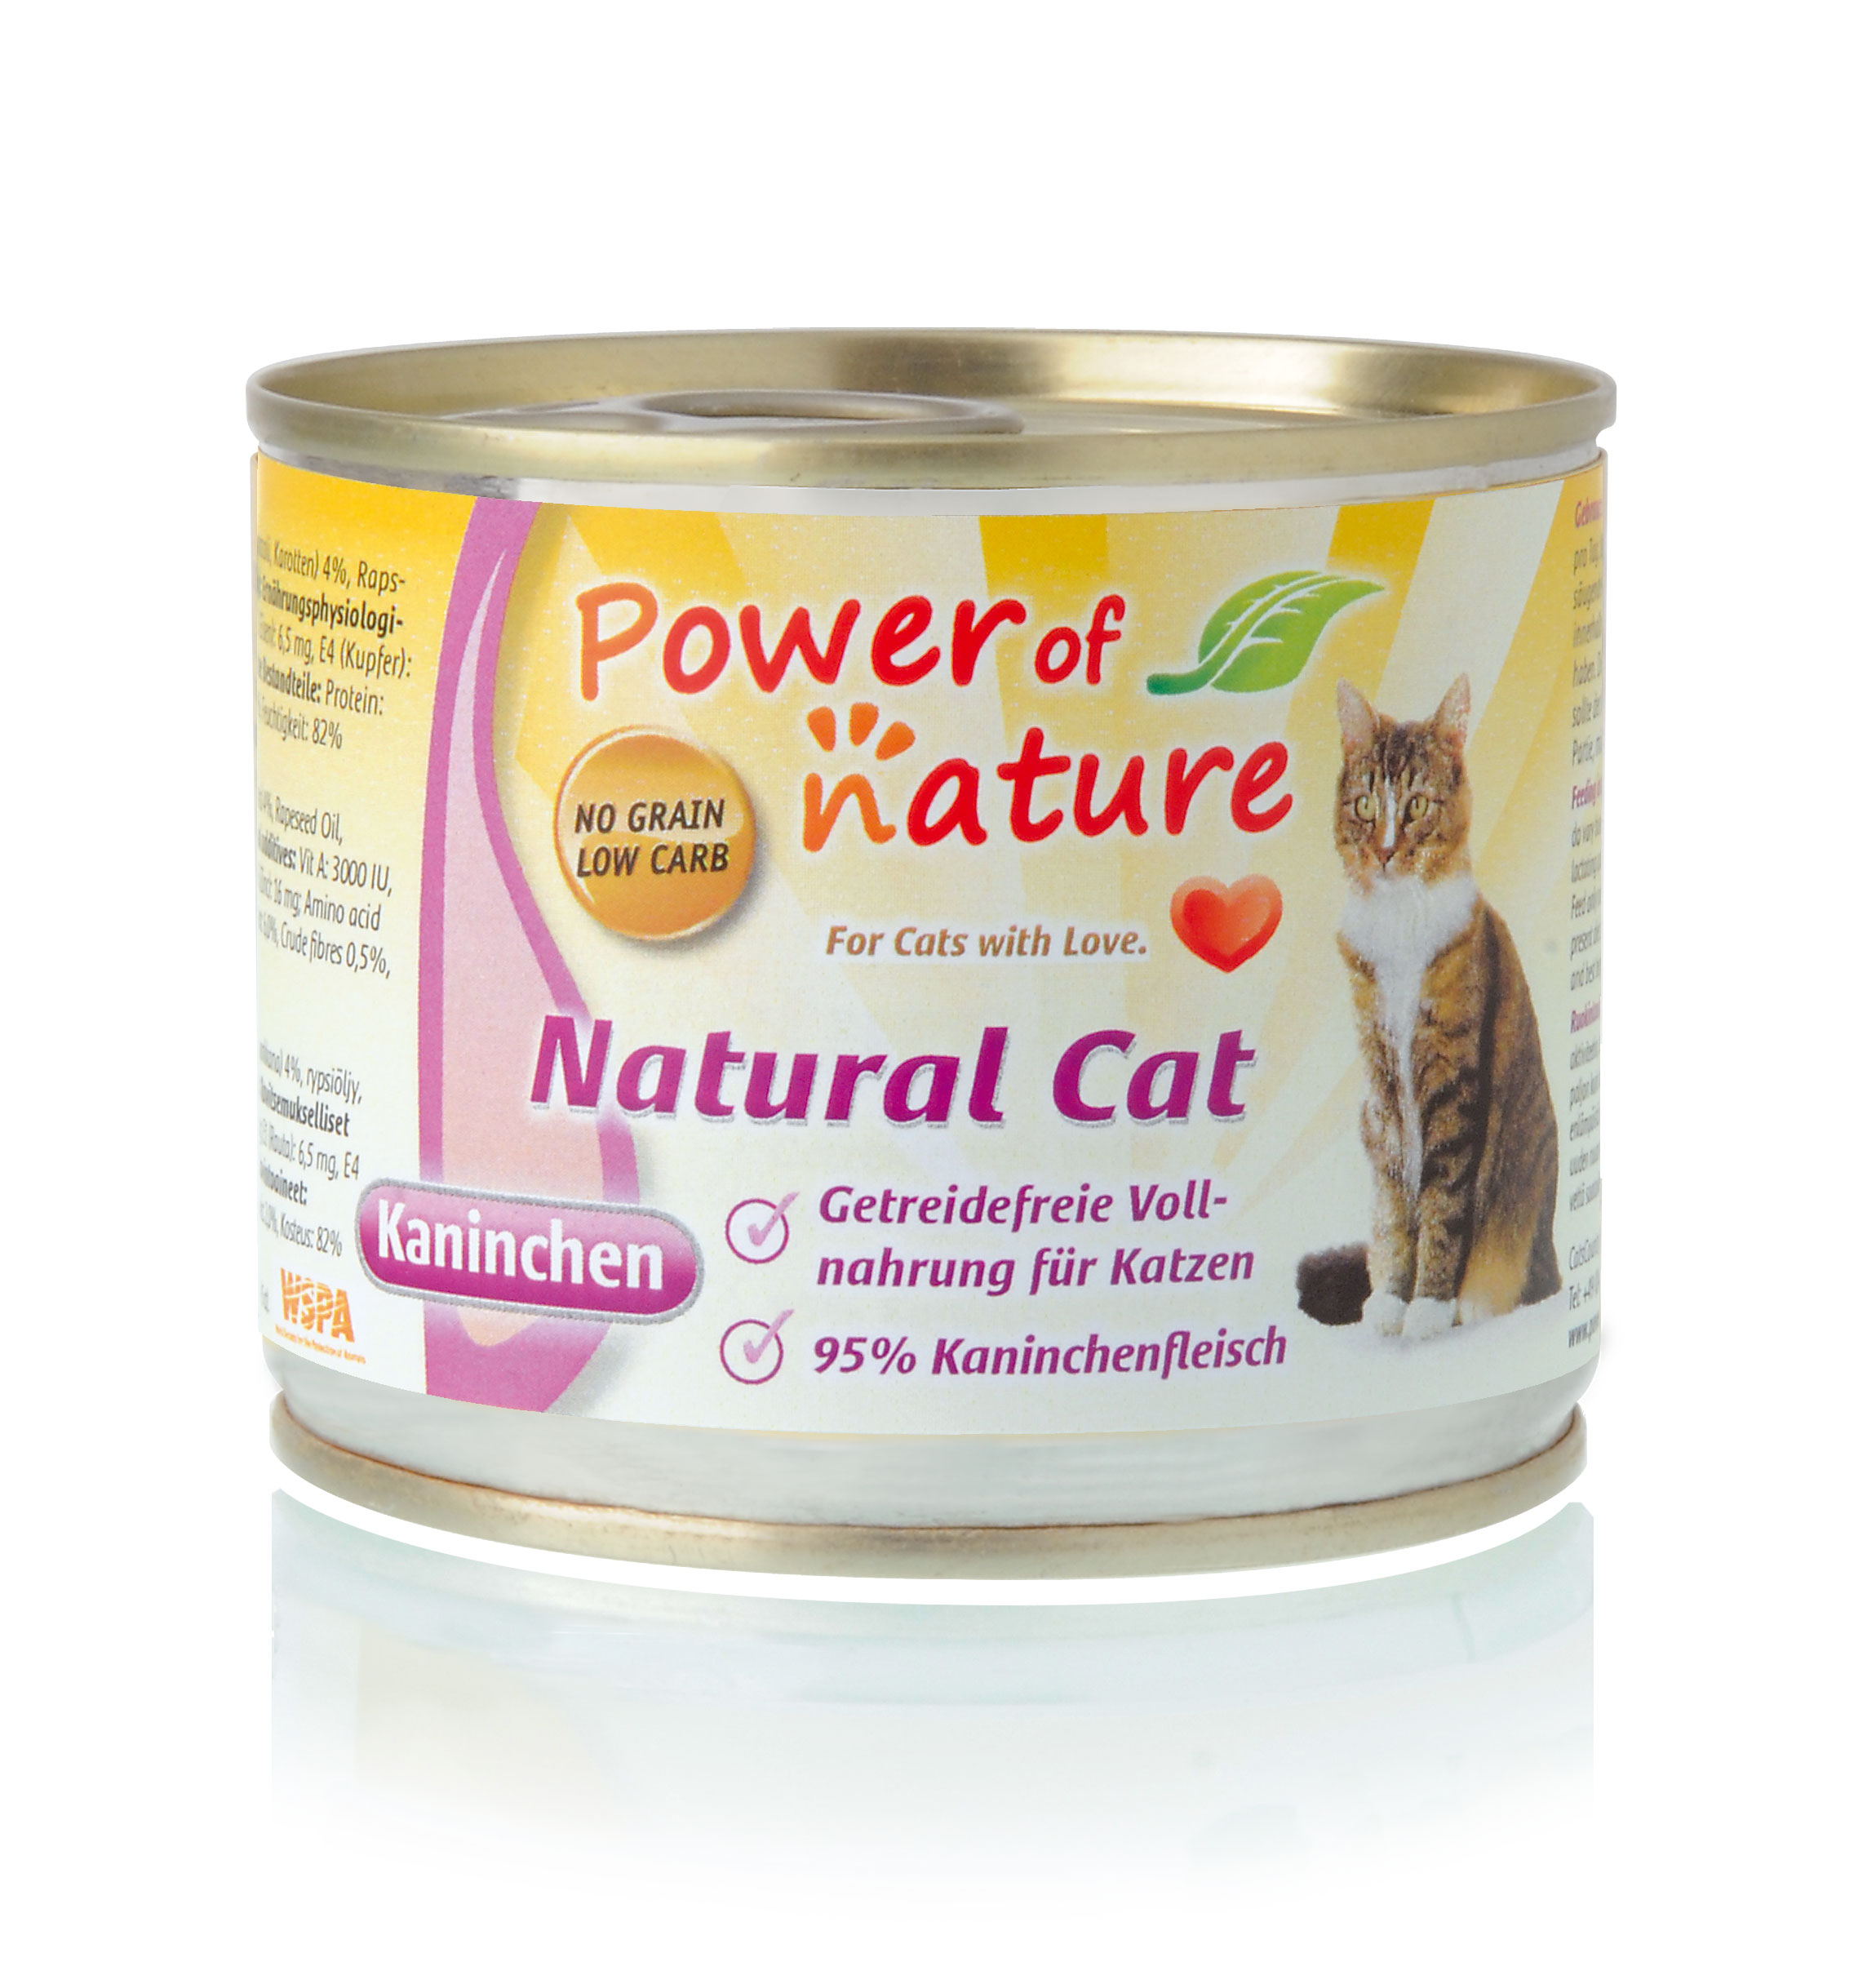 Power of Nature Natural Cat Dose Kaninchen 24 x 200g